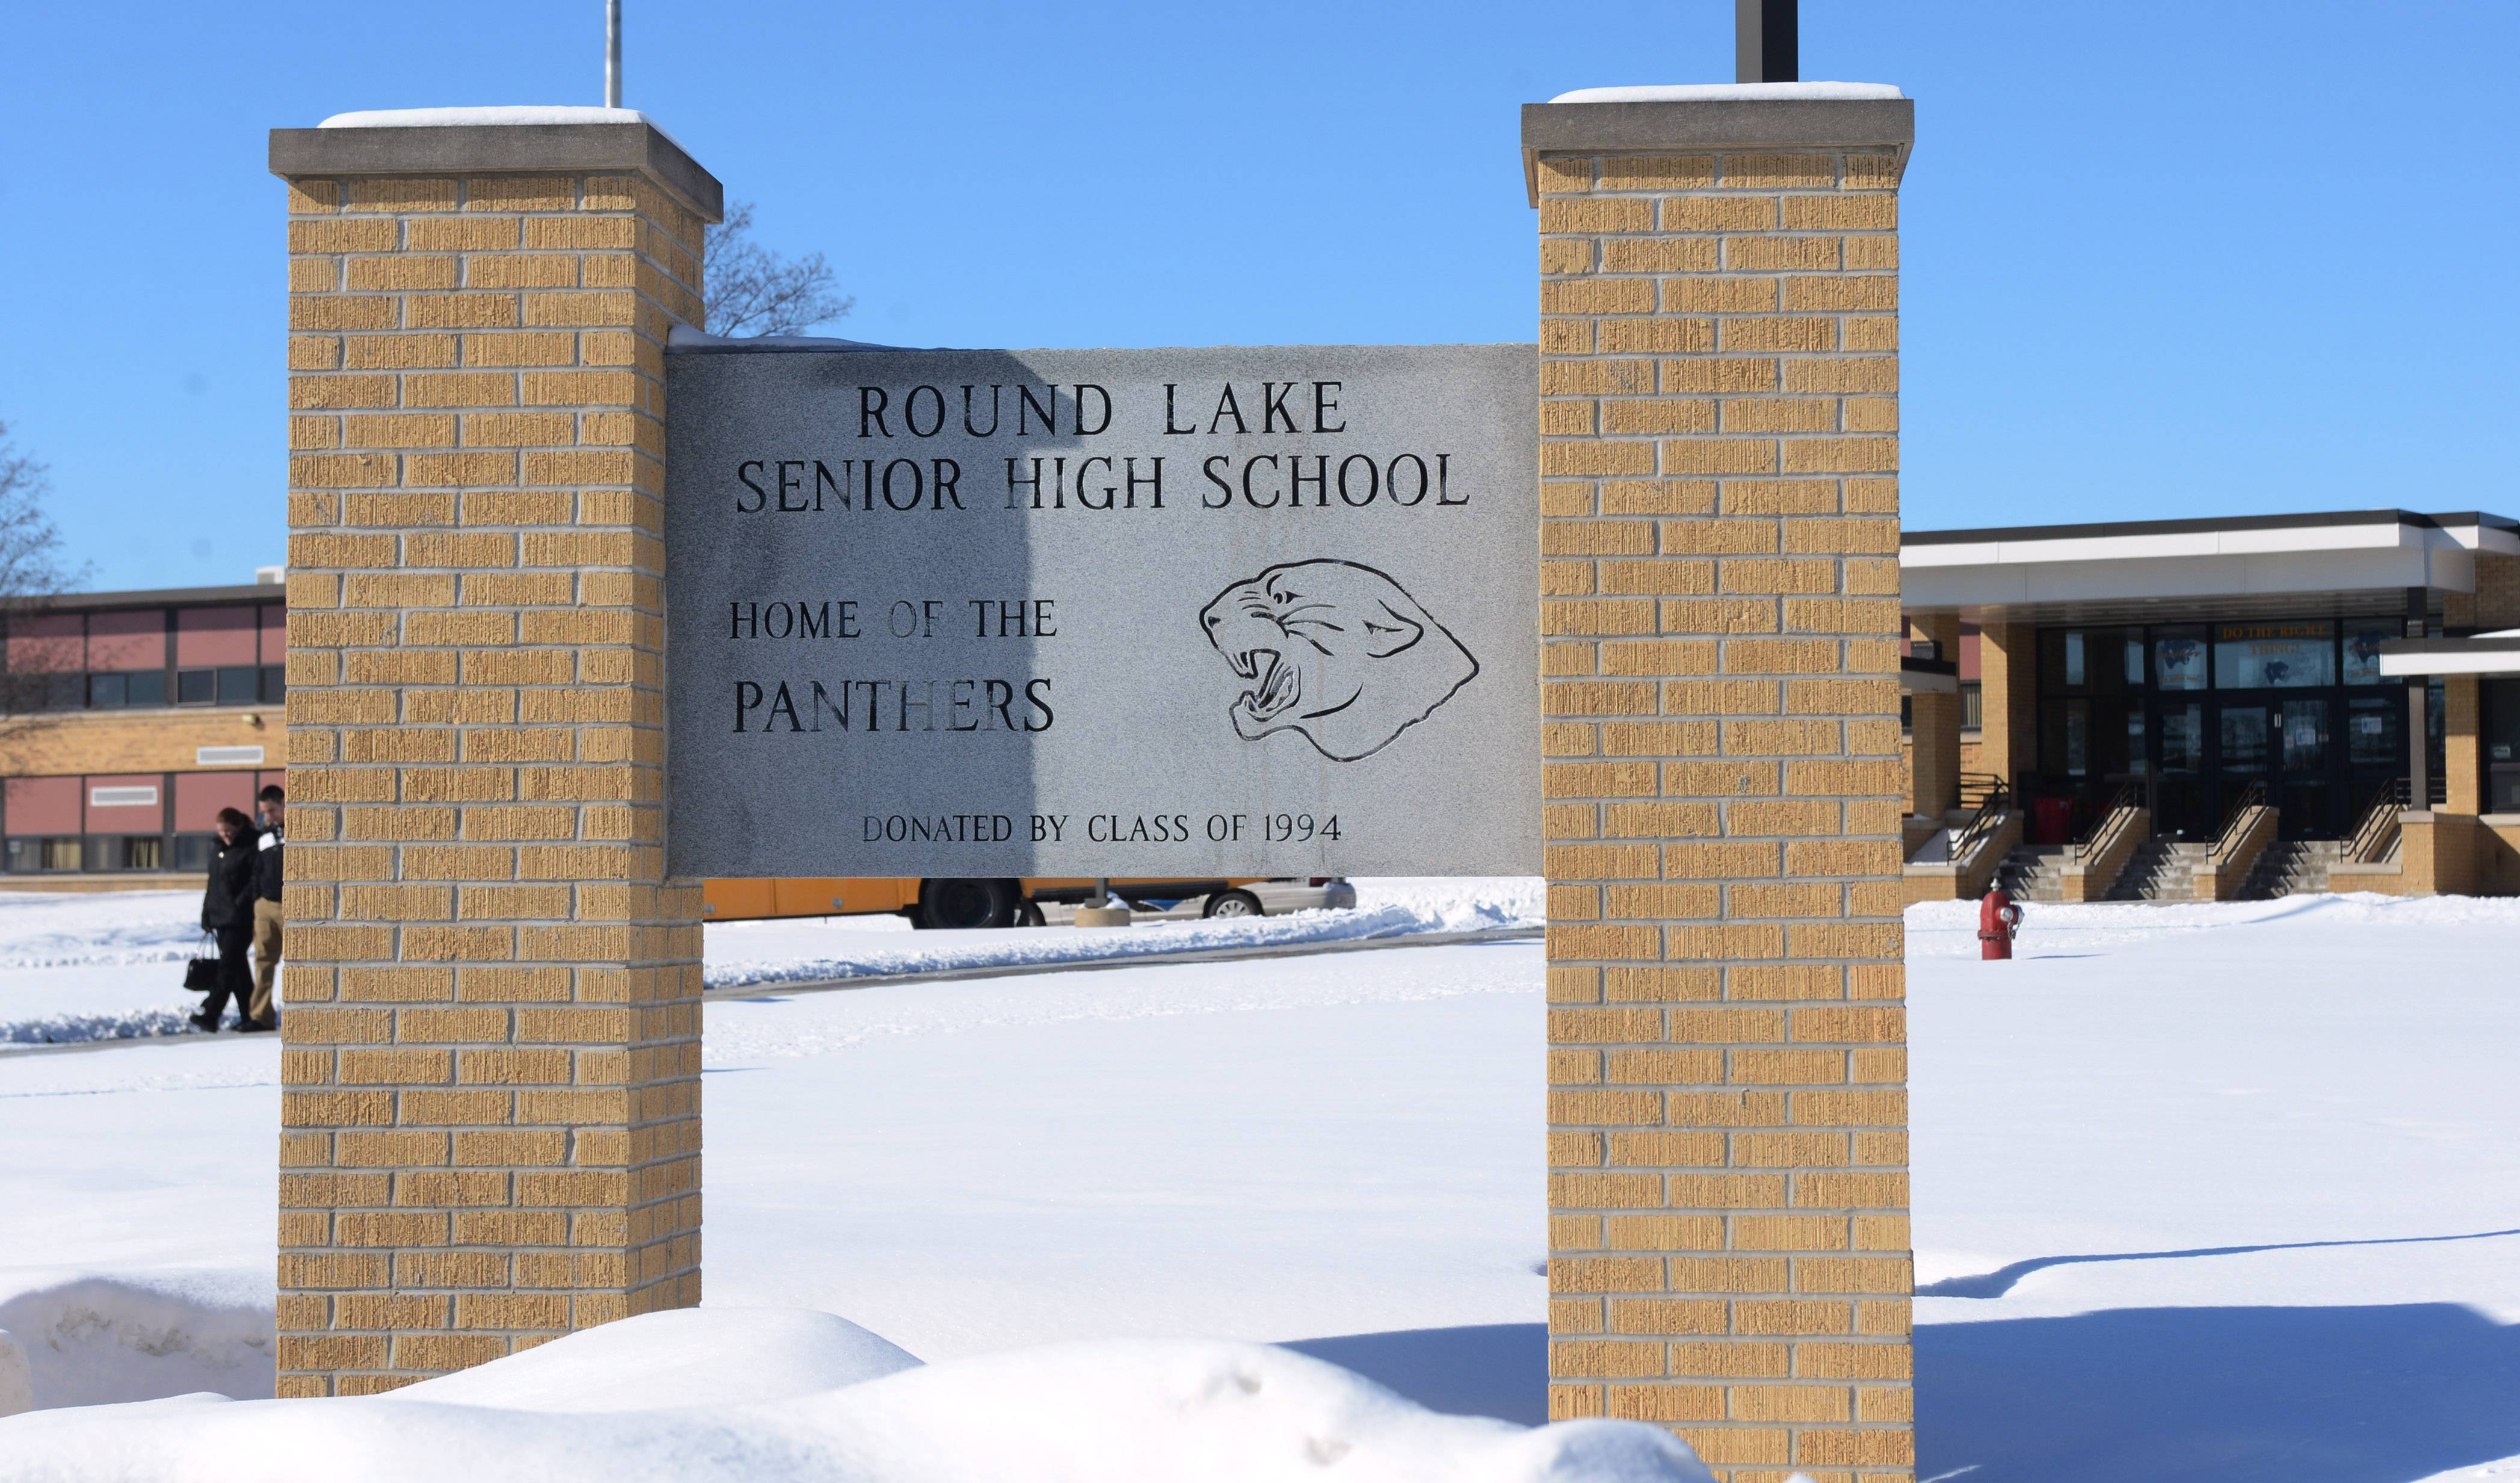 Voters rejected Round Lake Area Unit District 116's request to borrow $29 million for a high school expansion and renovations.